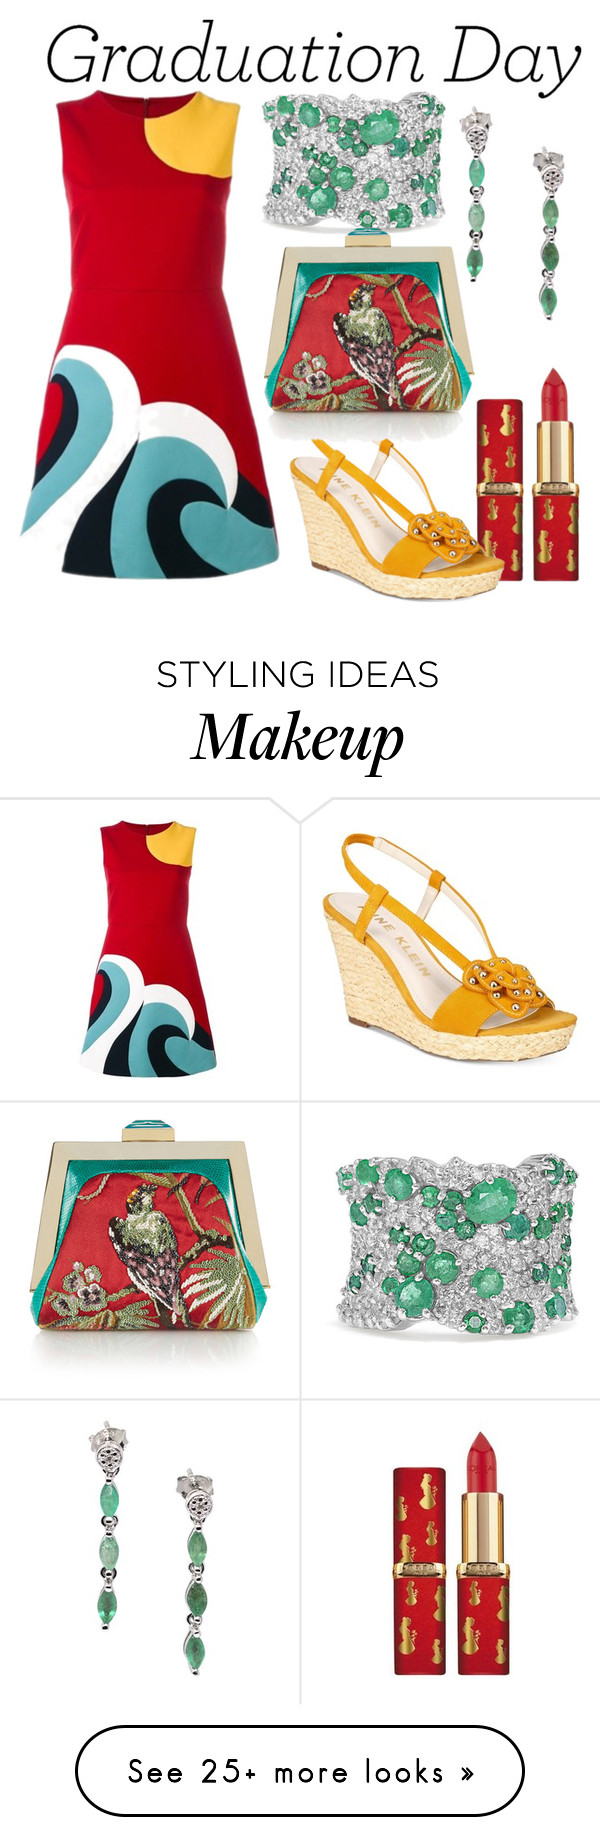 """""""après moi le déluge"""" by dita-west-grand on Polyvore featuring RED Valentino, Effy Jewelry, Anne Klein, De Buman and Rubeus"""